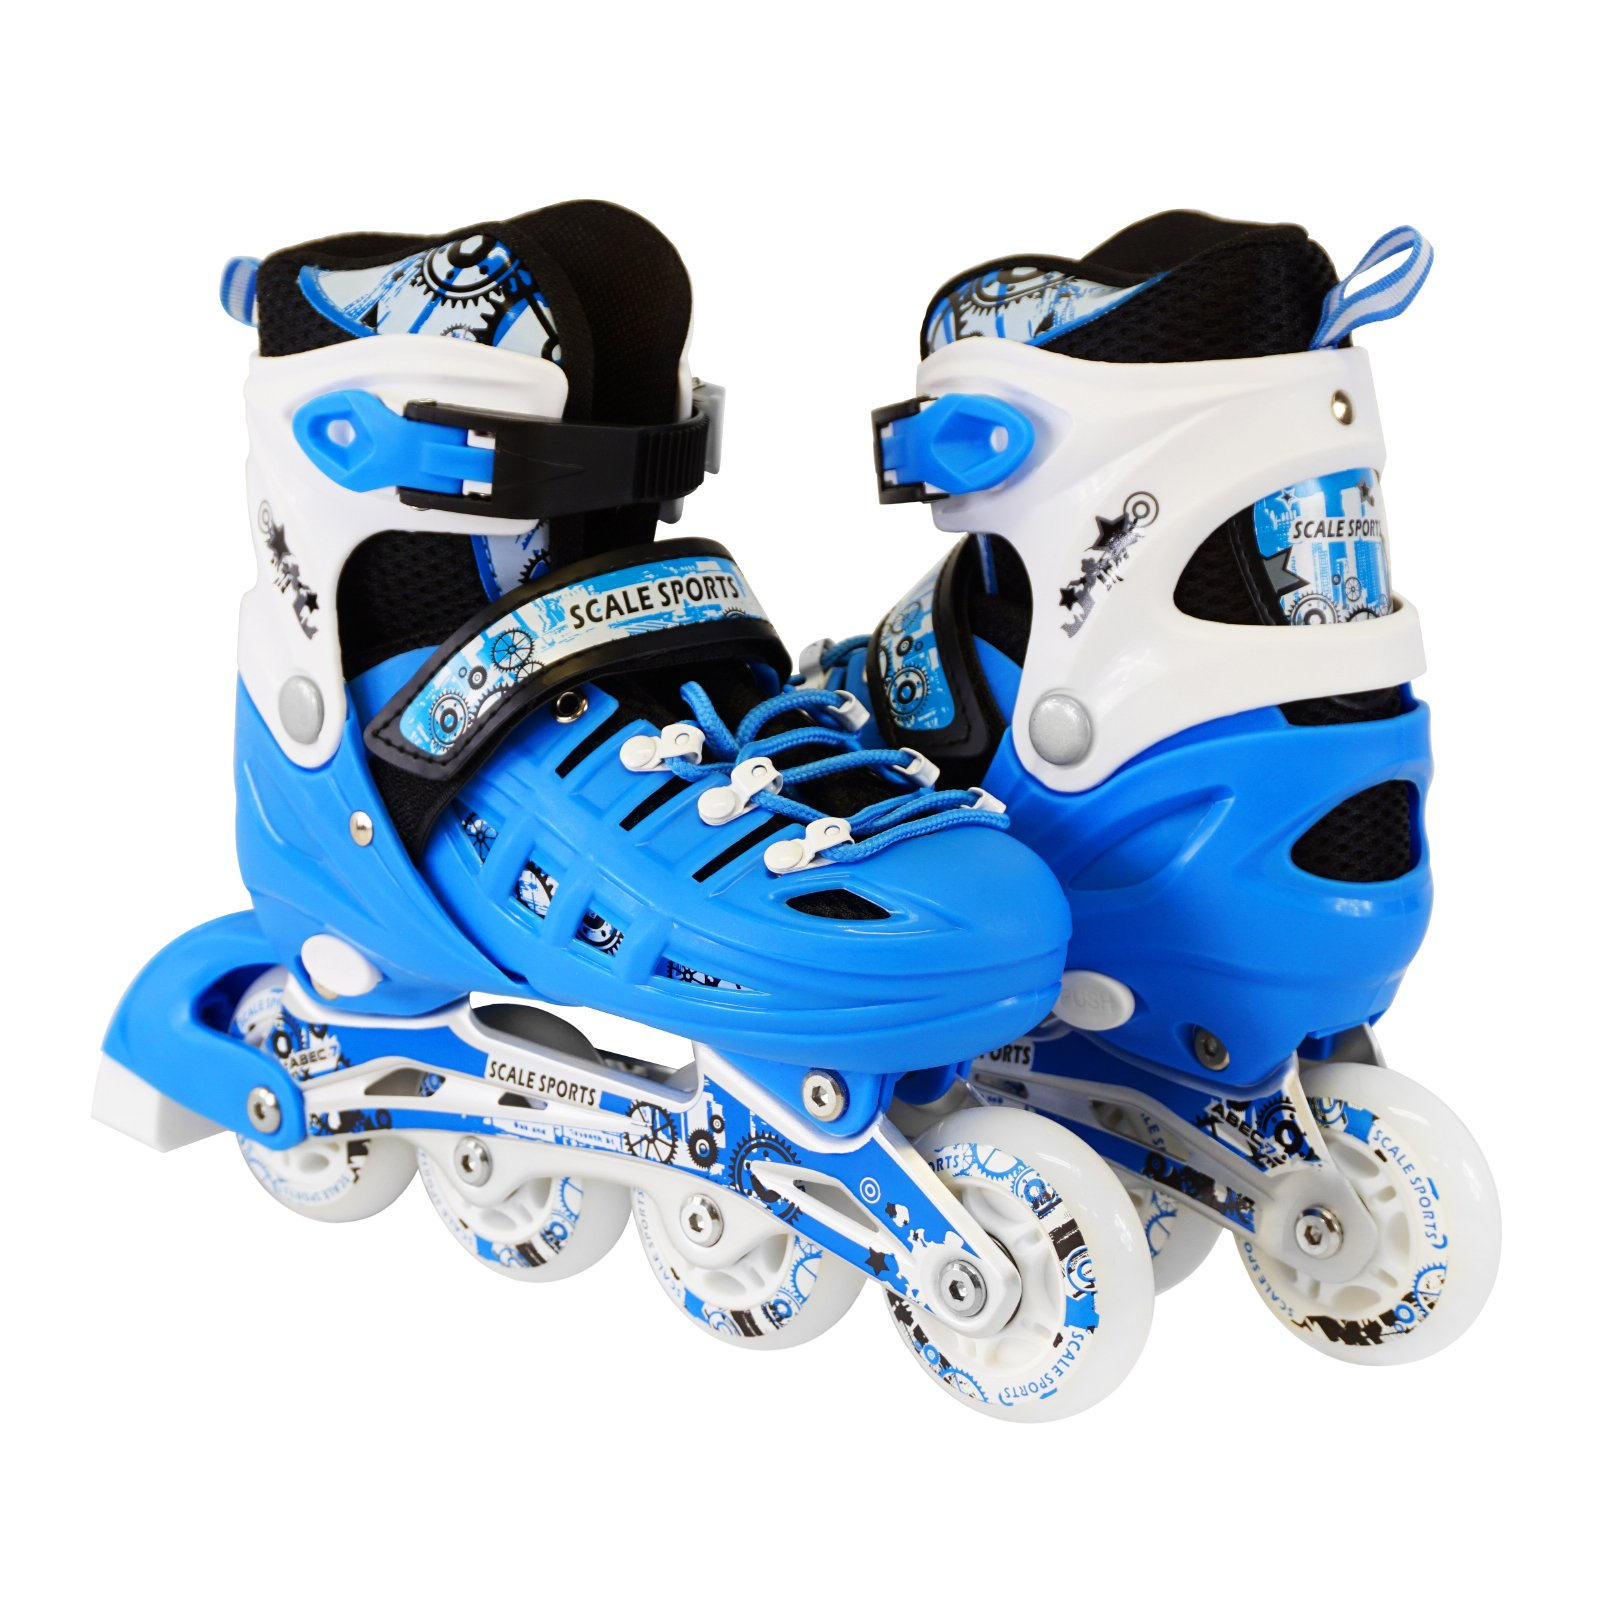 Kids Adjustable Inline Roller Blade Skates Scale Sports Light Blue Medium Sizes Safe Durable Outdoor Featuring Illuminating Front Wheels 905